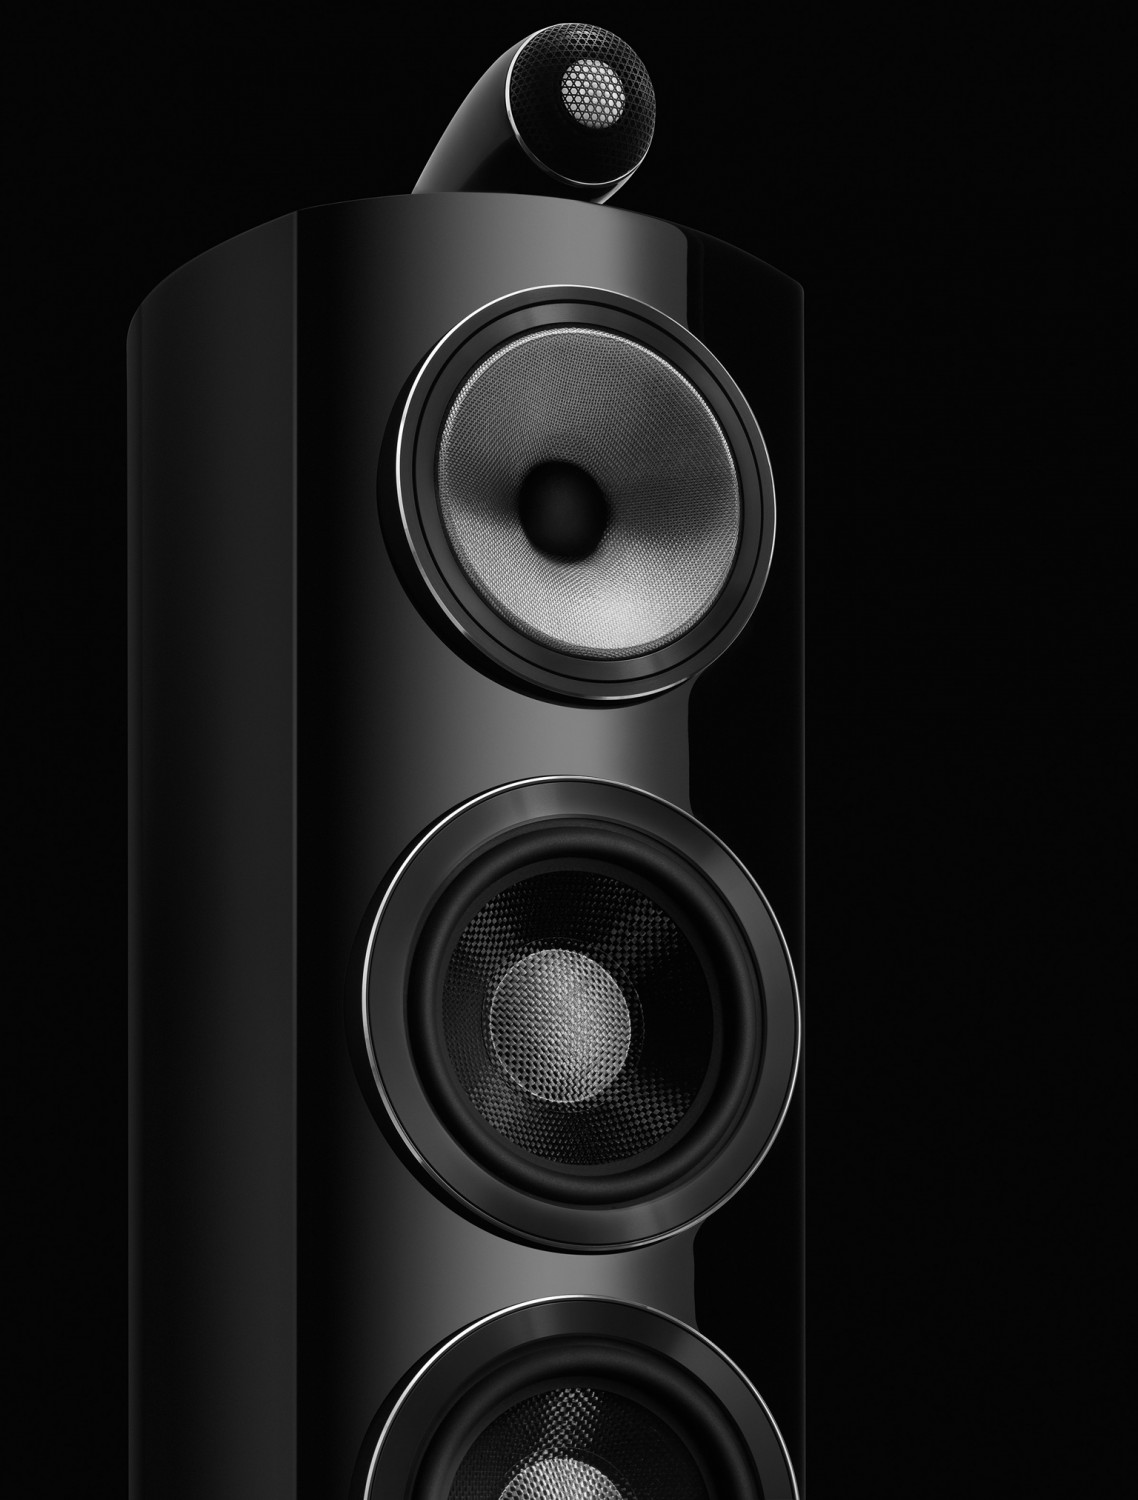 test lautsprecher stereo b w bowers wilkins 804 d3. Black Bedroom Furniture Sets. Home Design Ideas